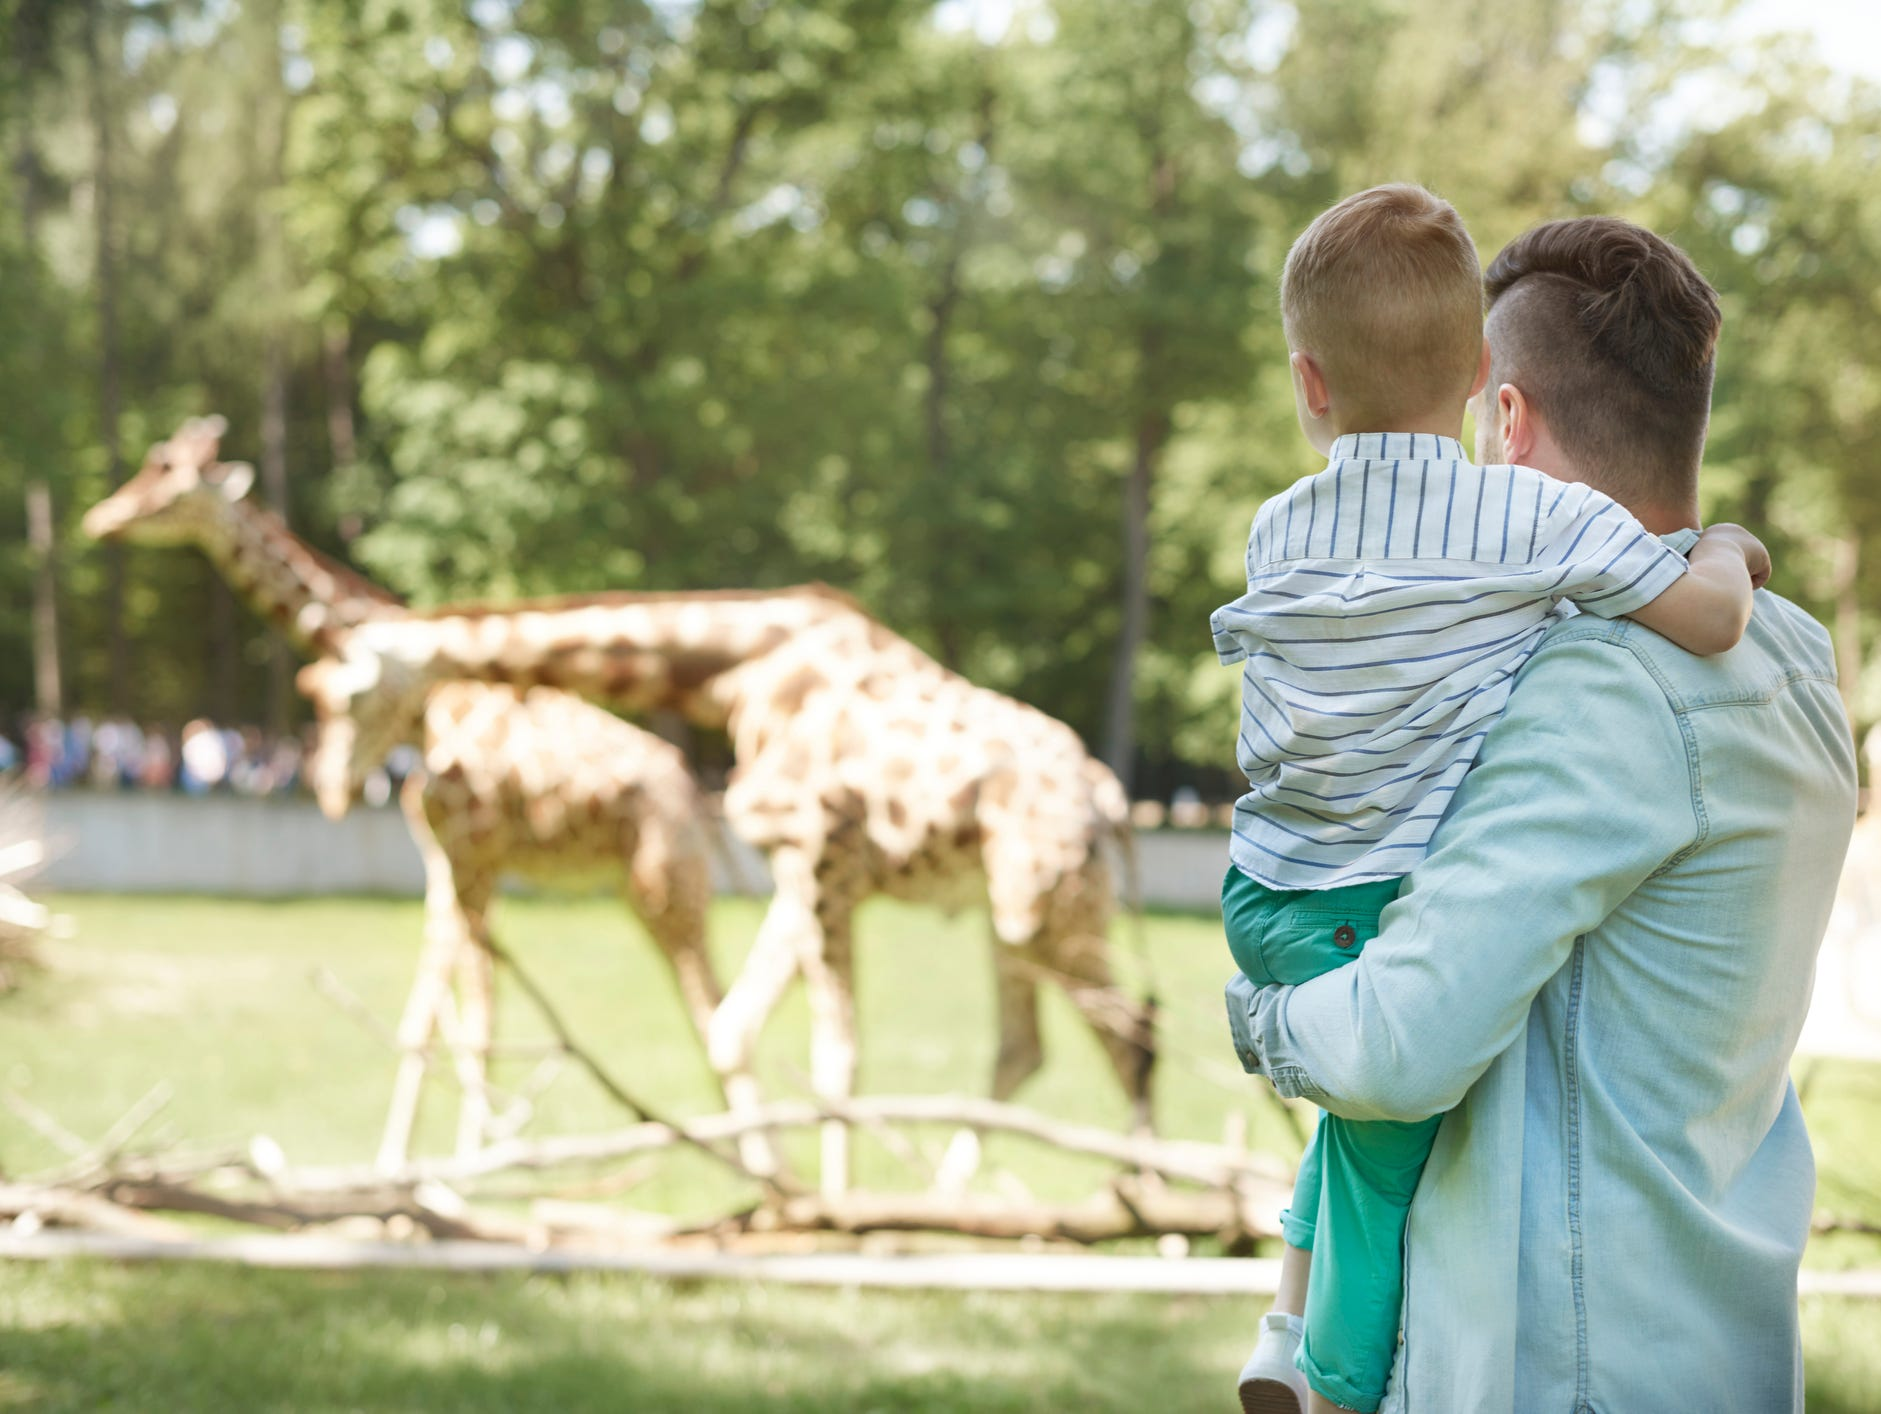 Travel the savannas of Africa or the hilltops of Asia at the Montgomery Zoo. Enter from 3/6-3/29.